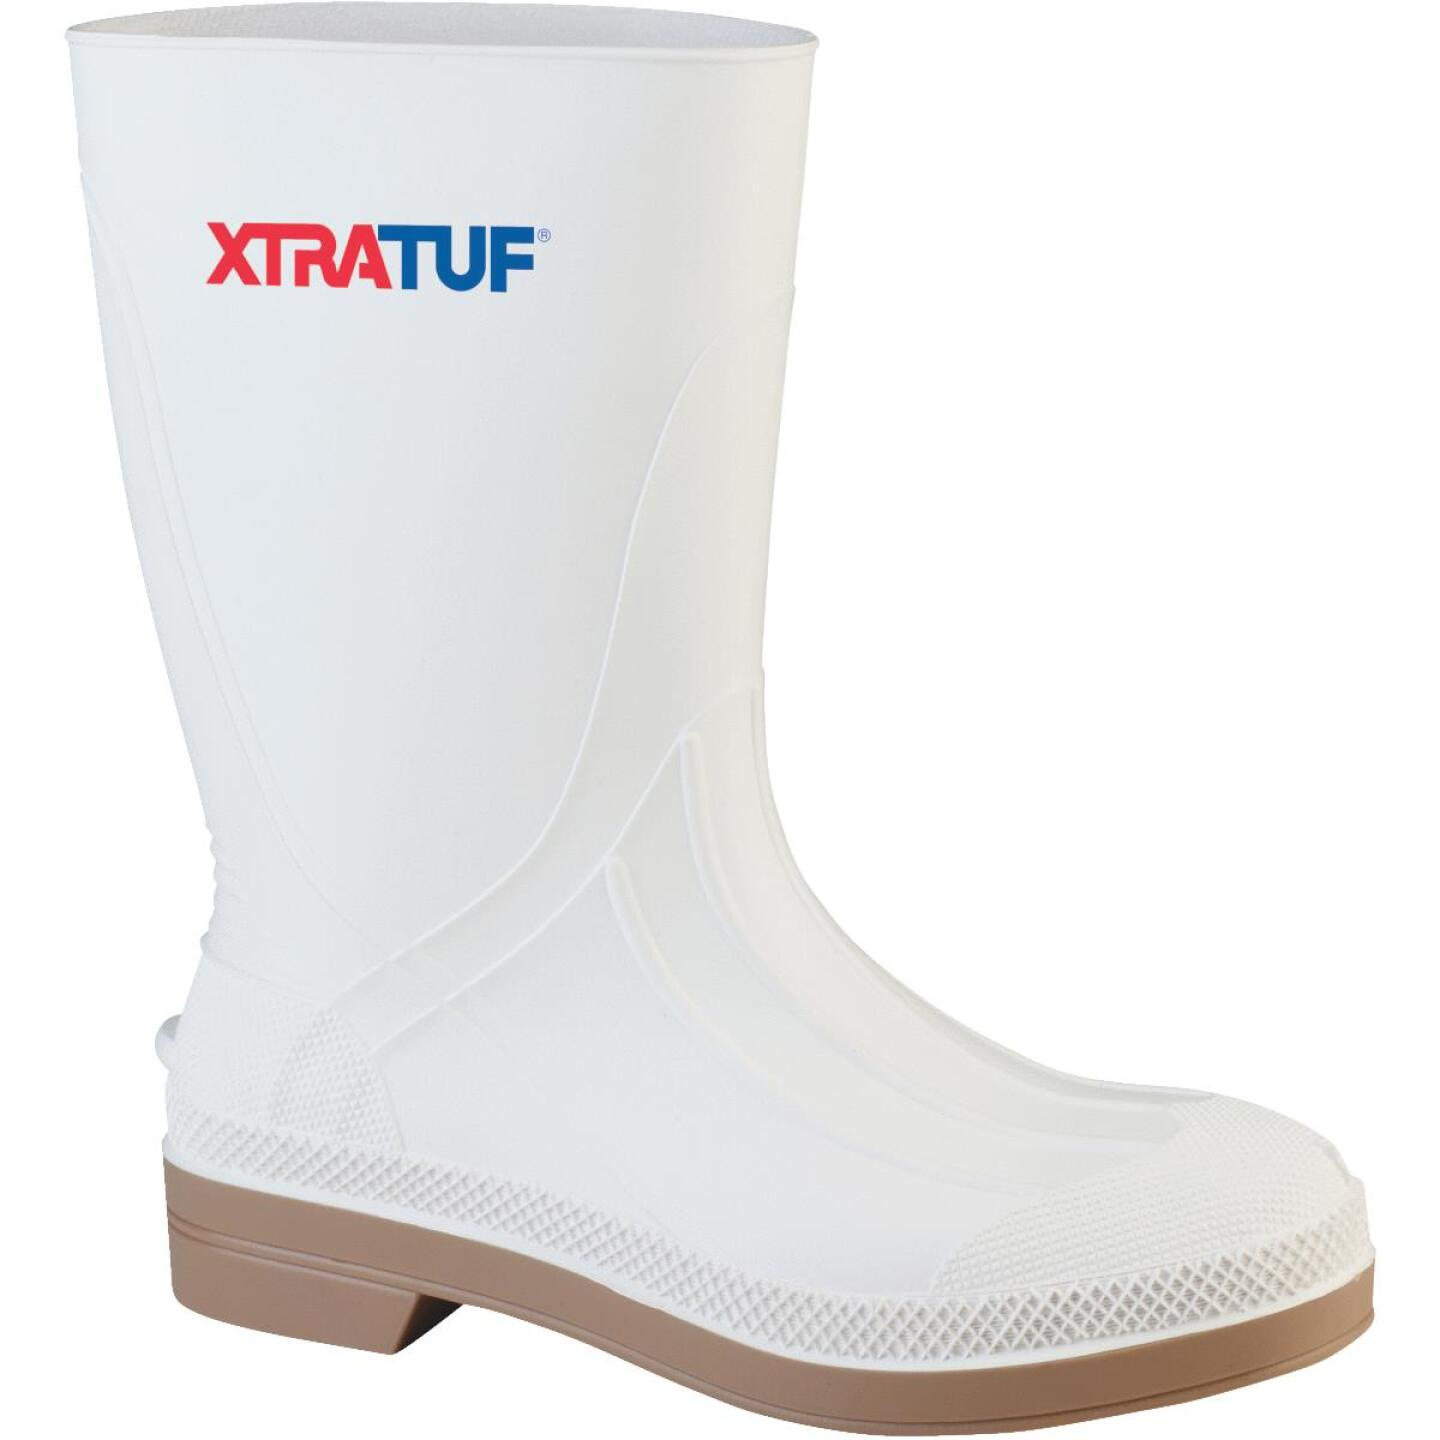 Honeywell XtraTuf Men's Size 13 White PVC Shrimp Boot Image 1